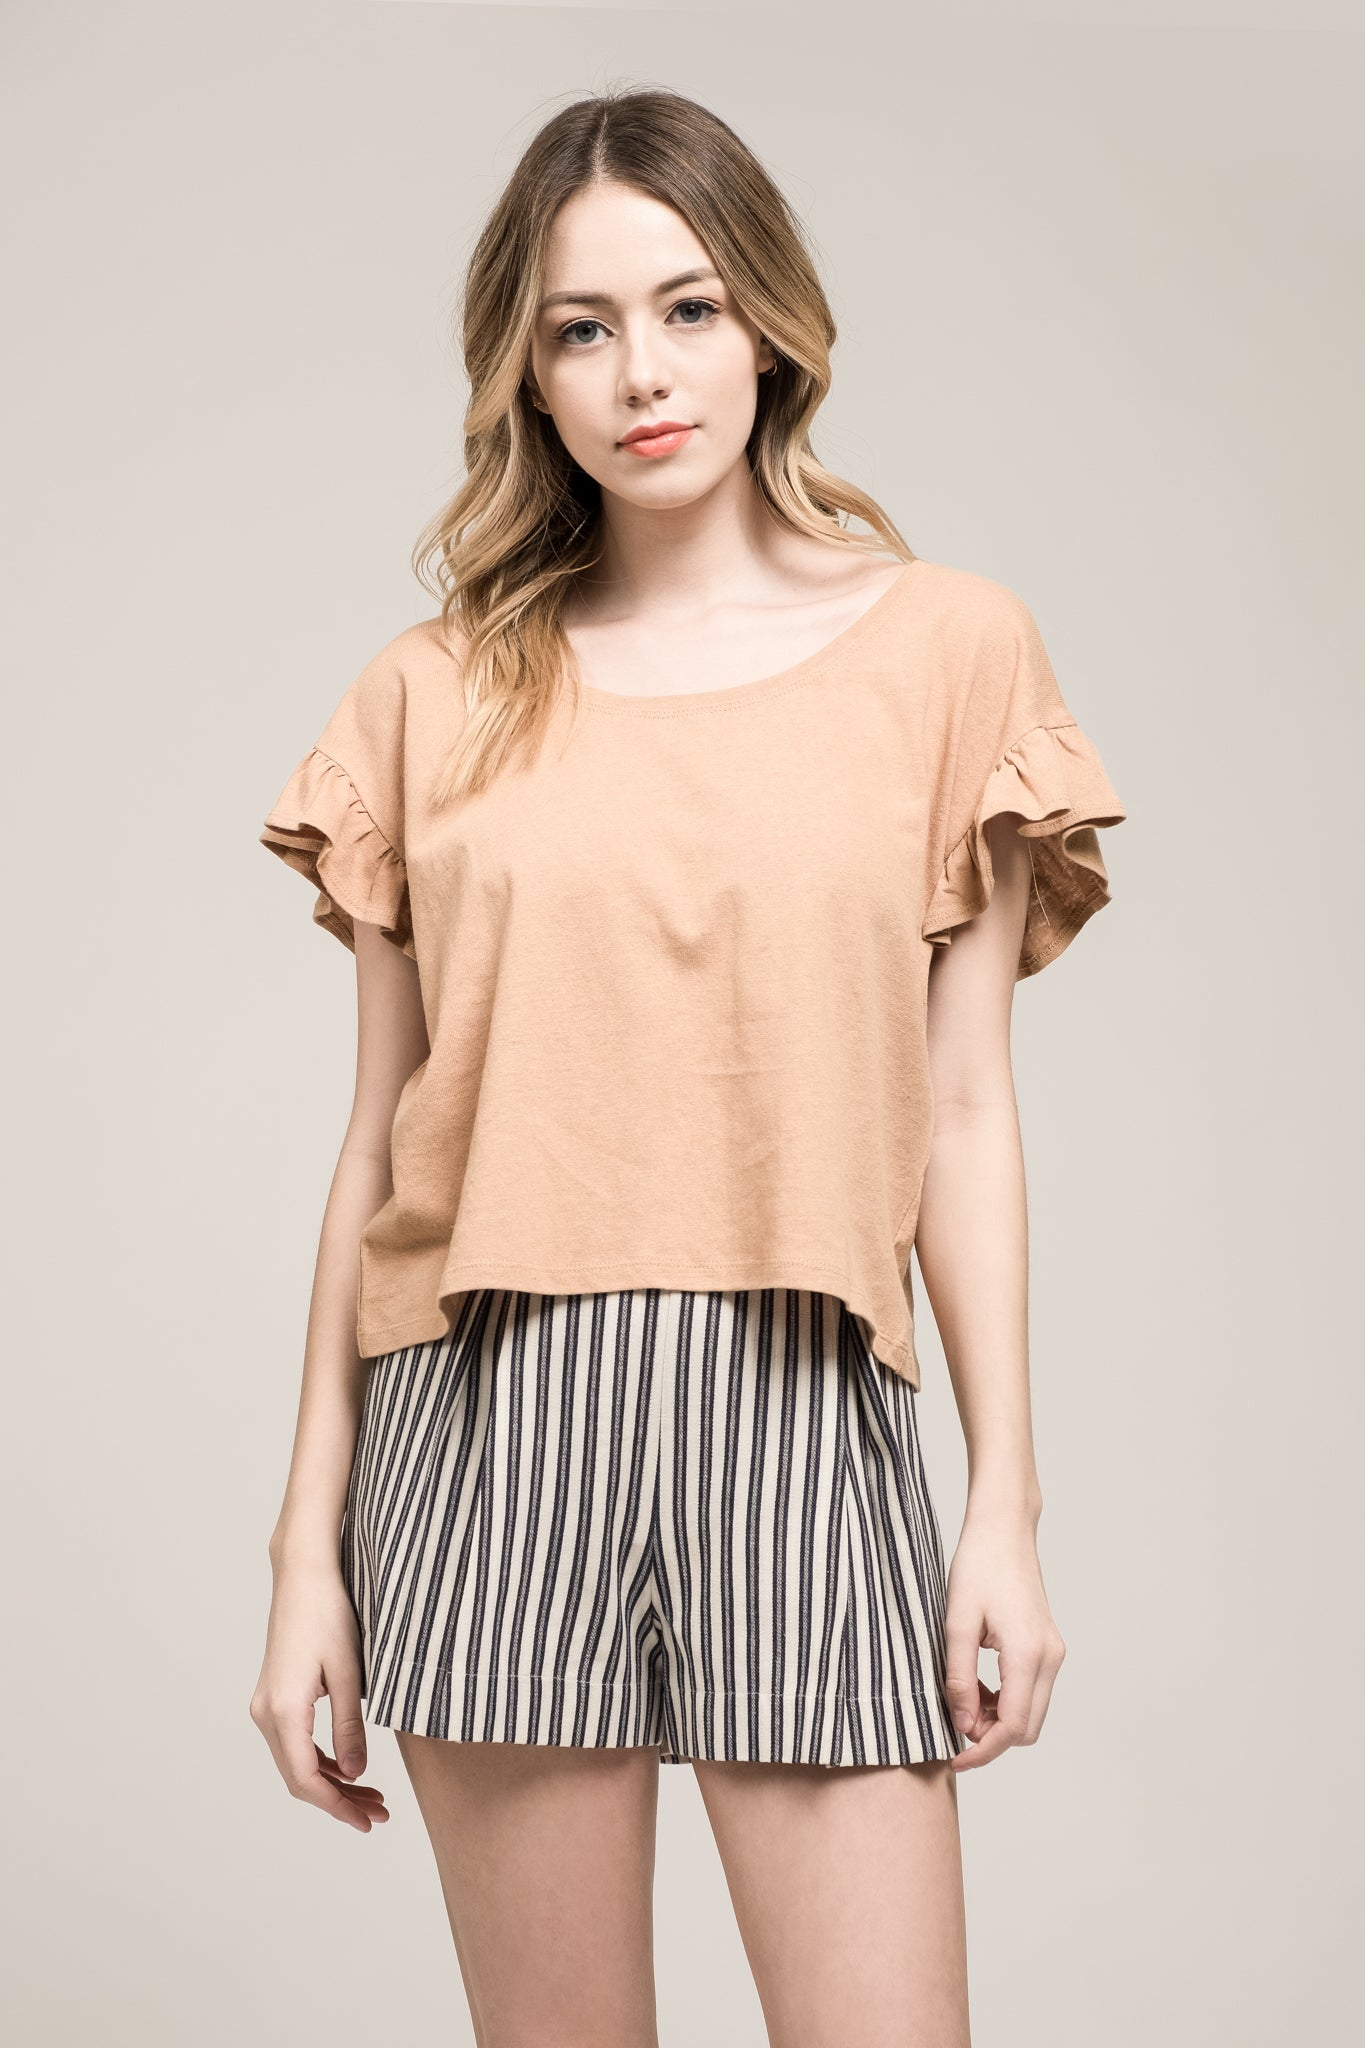 RUFFLED SHORT SLEEVE KNIT TOP